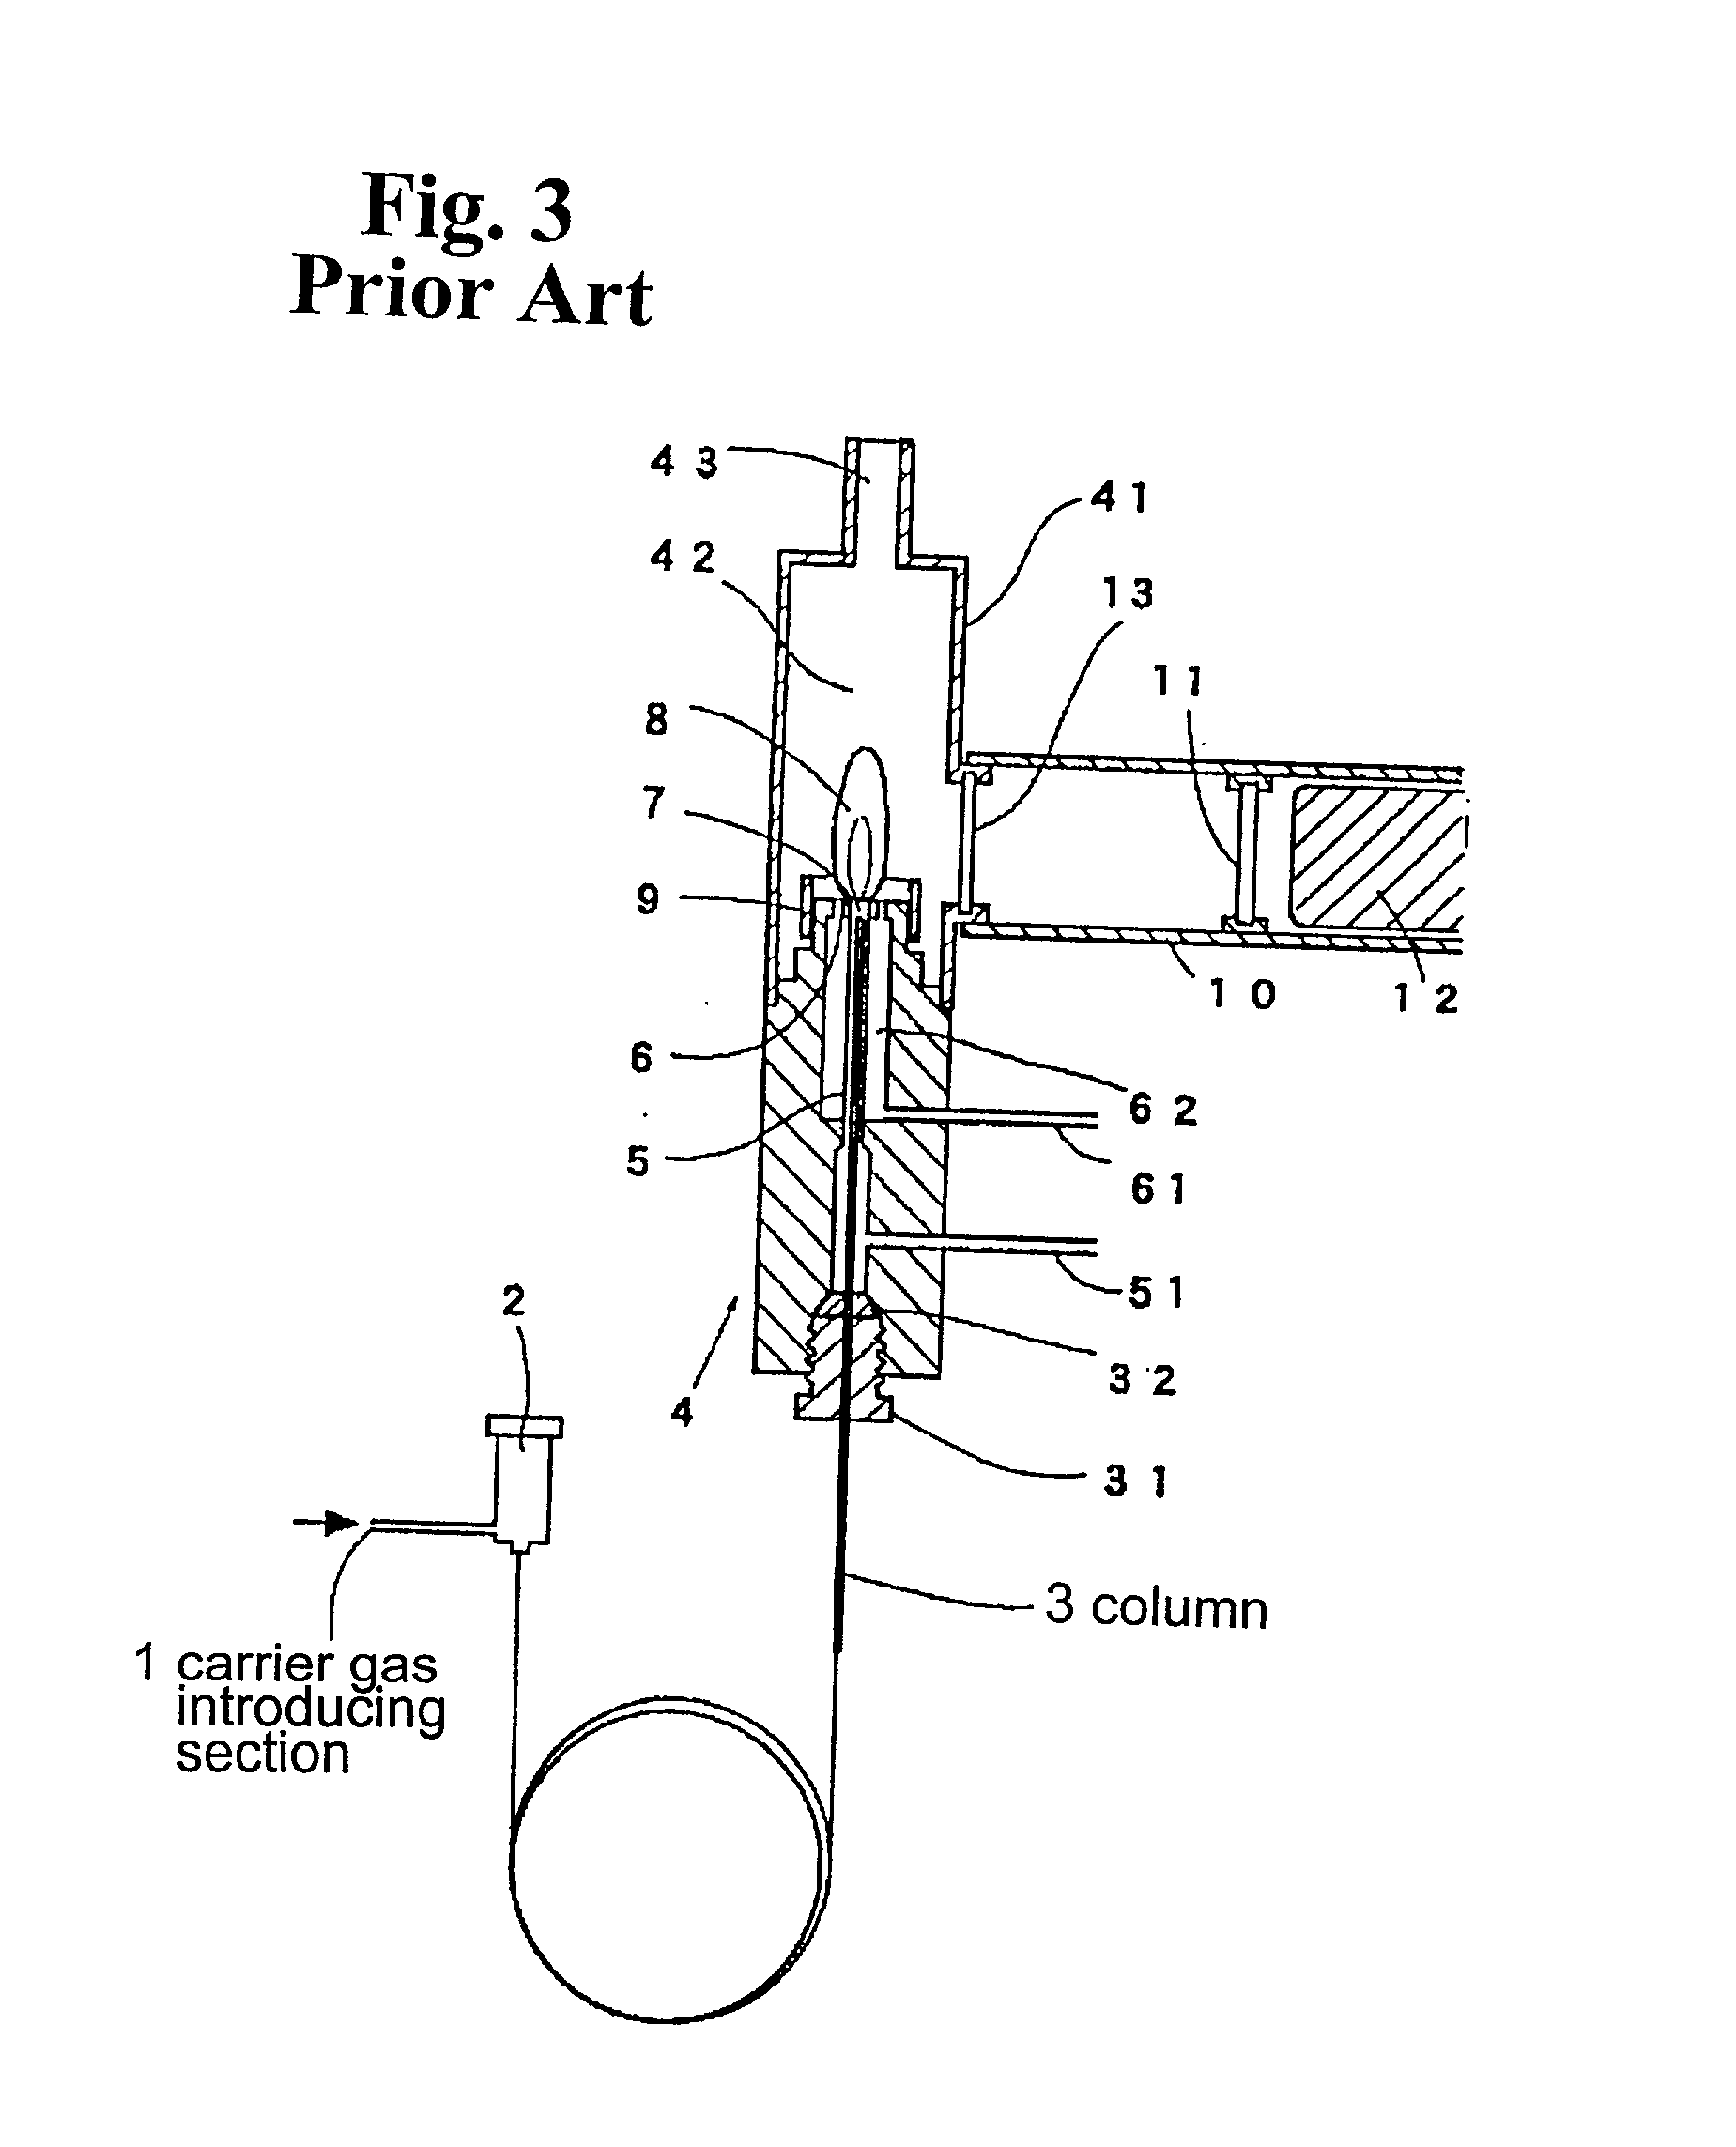 Schematic Diagram Of Flame Photometer